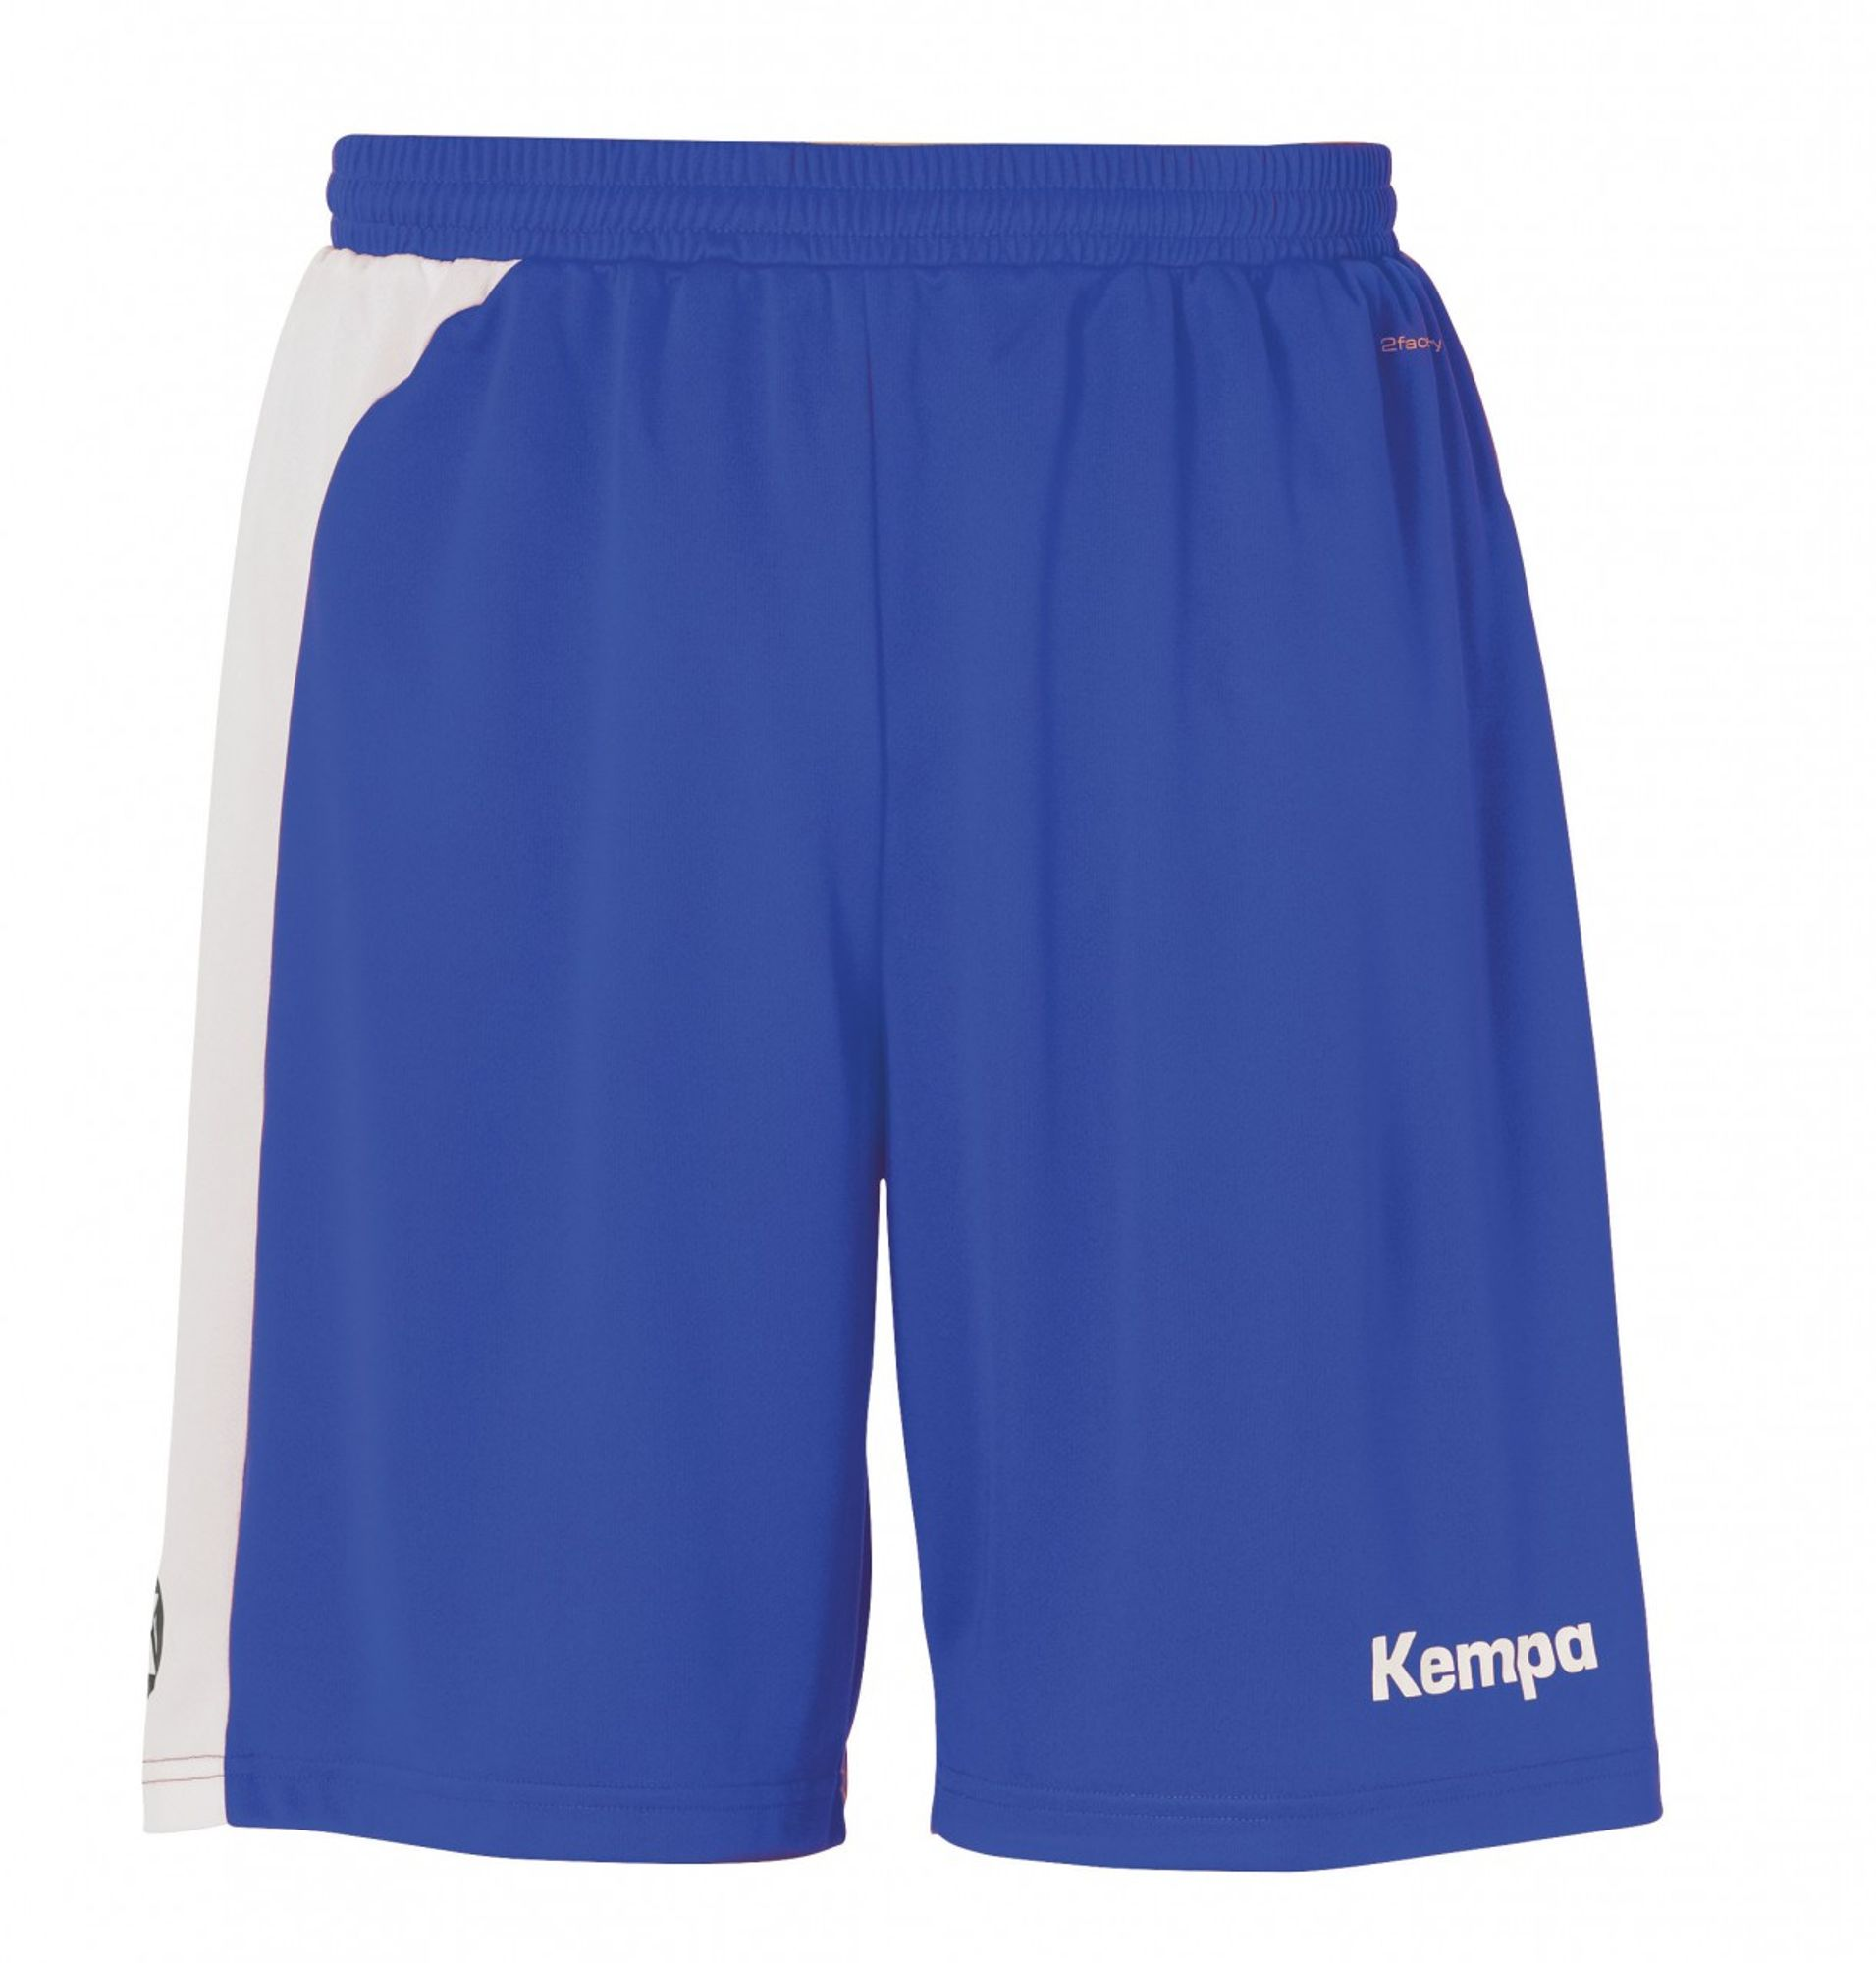 Kempa PEAK SHORTS - royal/weiß